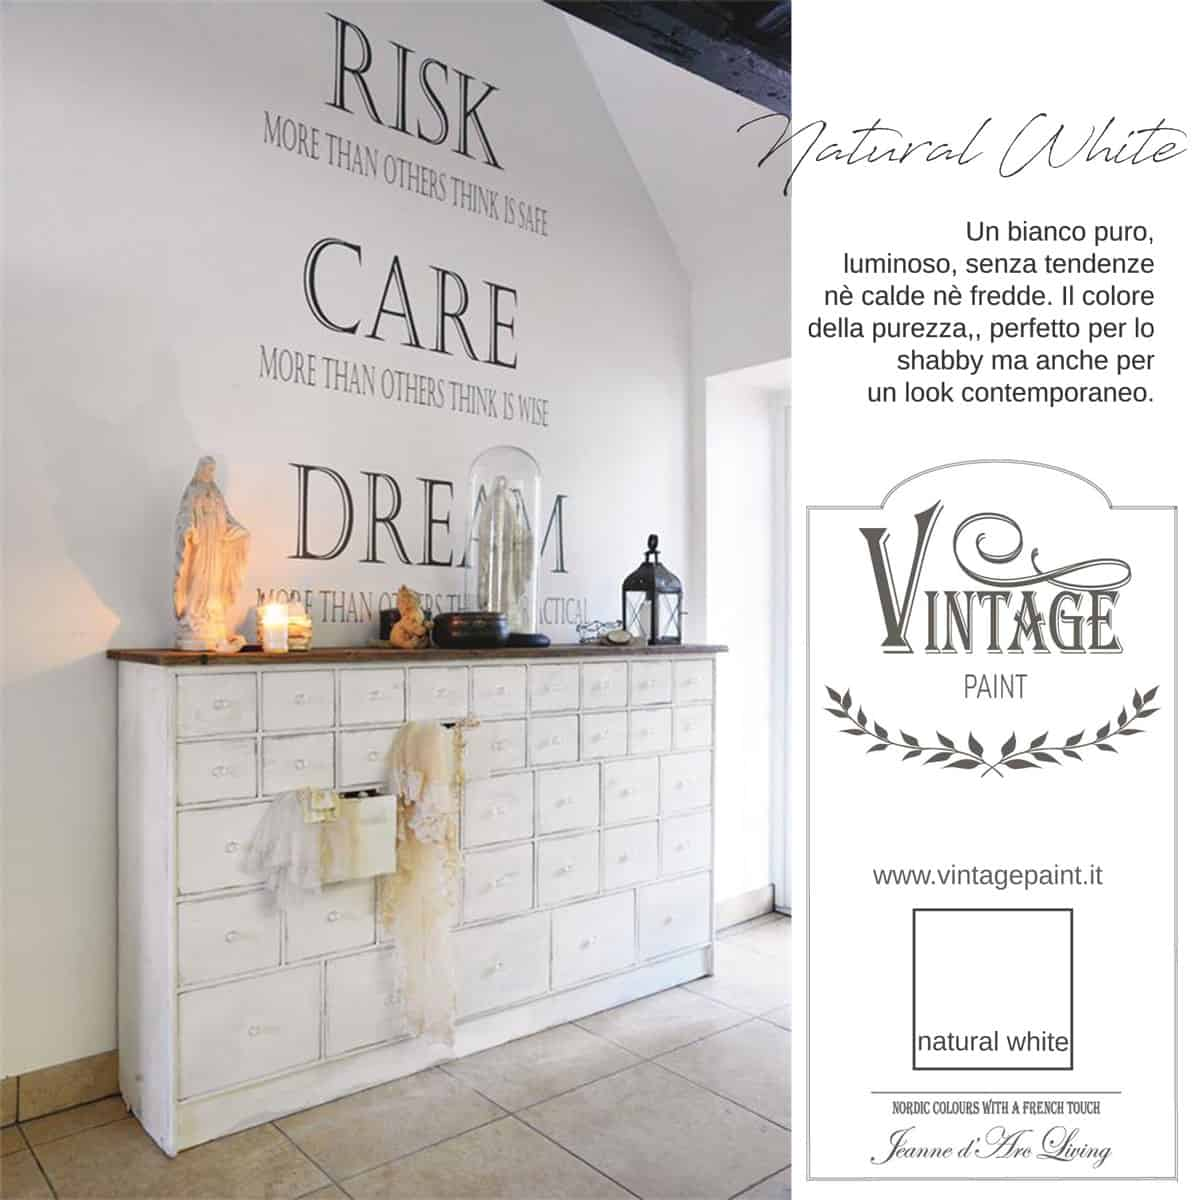 natural white bianco vintage chalk paint vernici shabby chic autentico look gesso